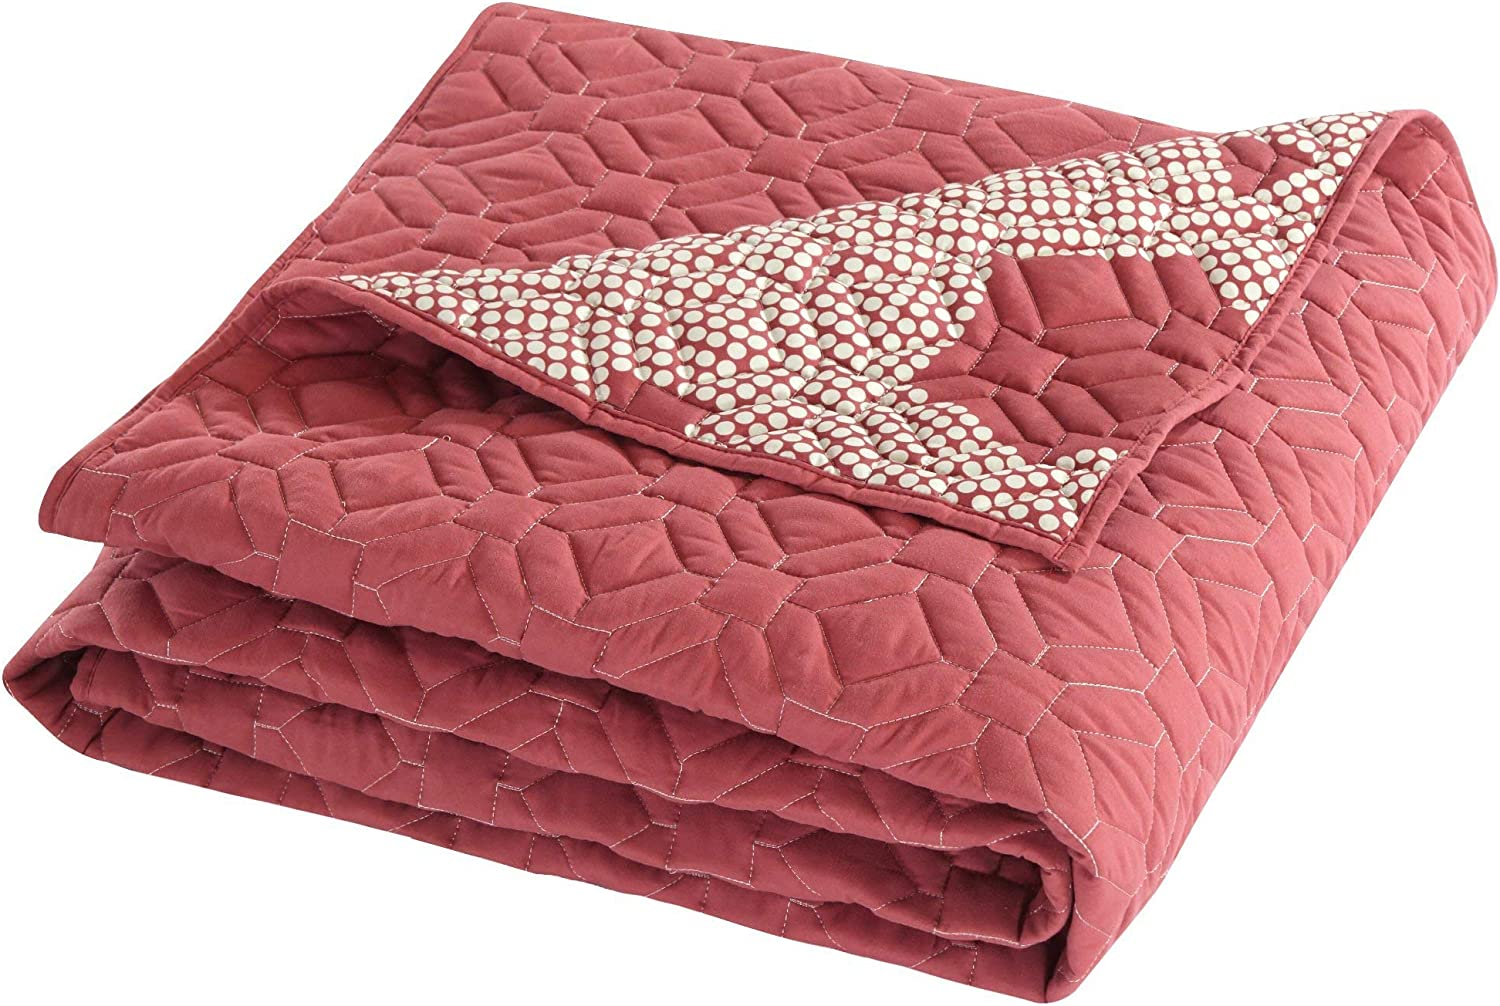 Chic Home 5 Piece Zoe Hexagon Embroidered Reversible Printed Backside Quilt Set, King, Brick